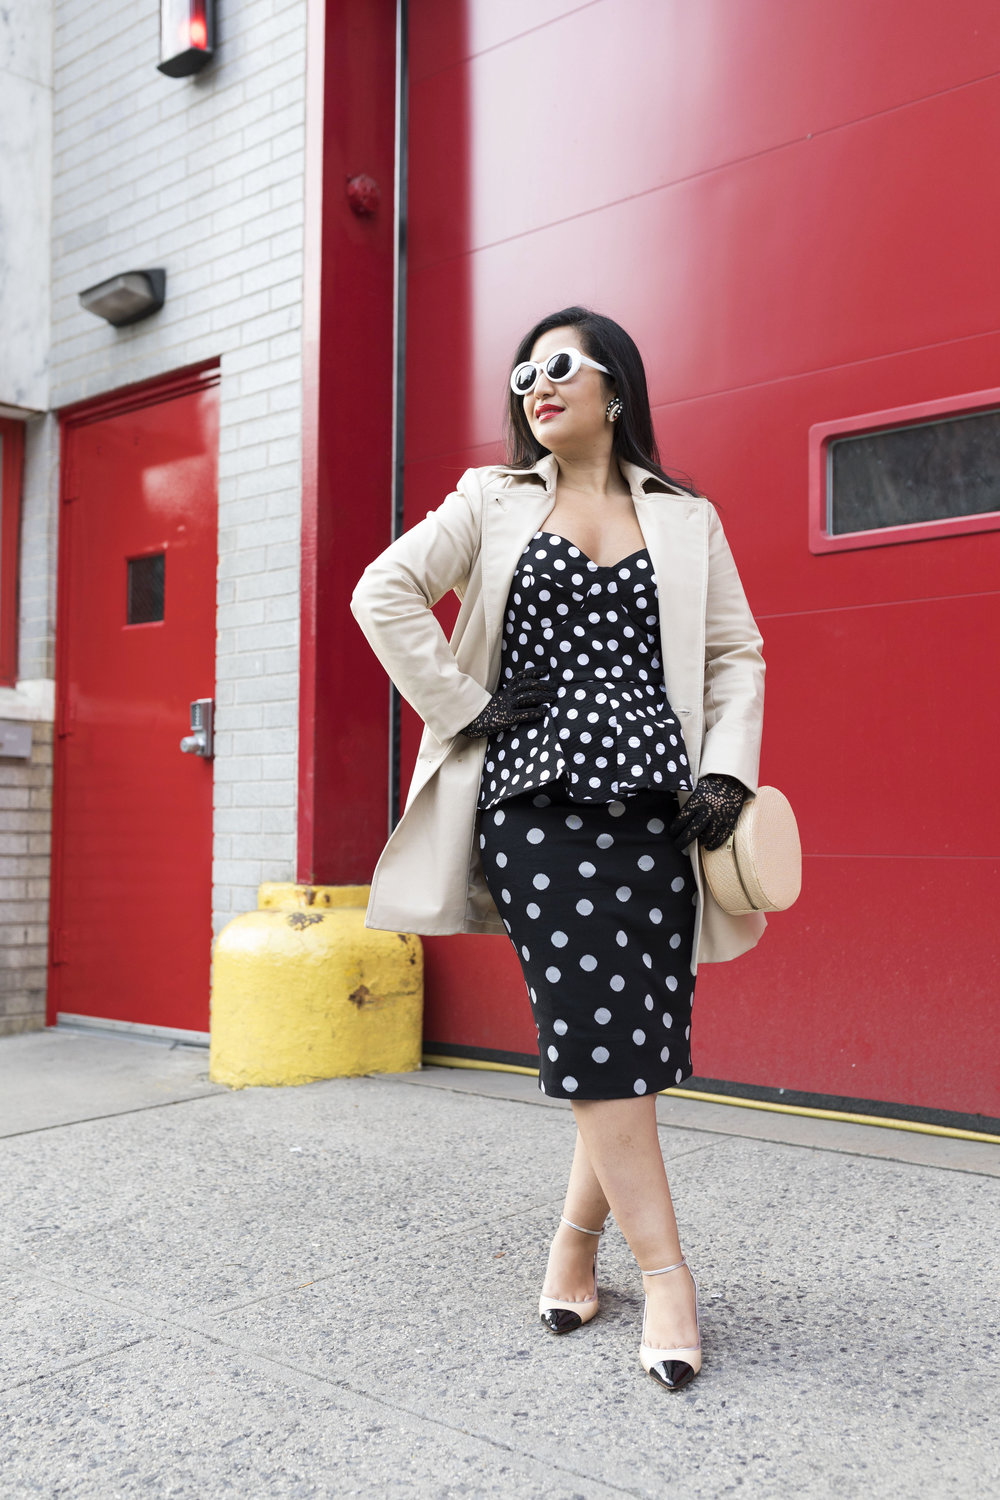 Krity S x Polka Dots x Spring Outfit12.jpg